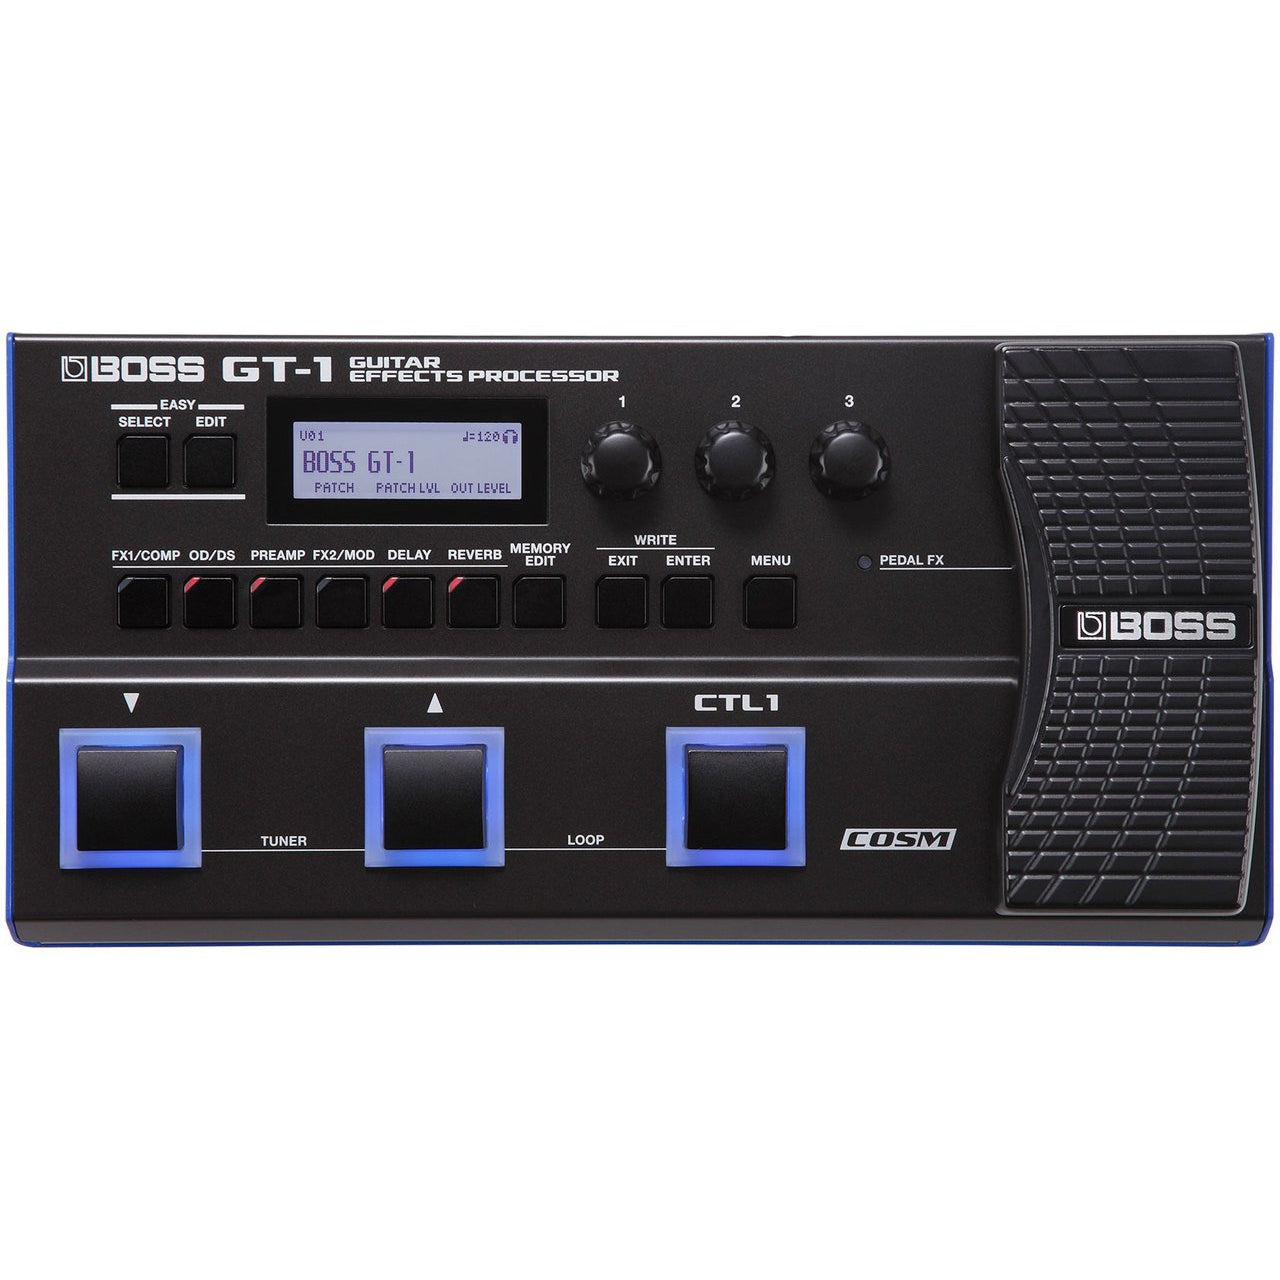 BOSS GT-1 GUITAR EFFECTS PROCESSOR - Arties Music Online